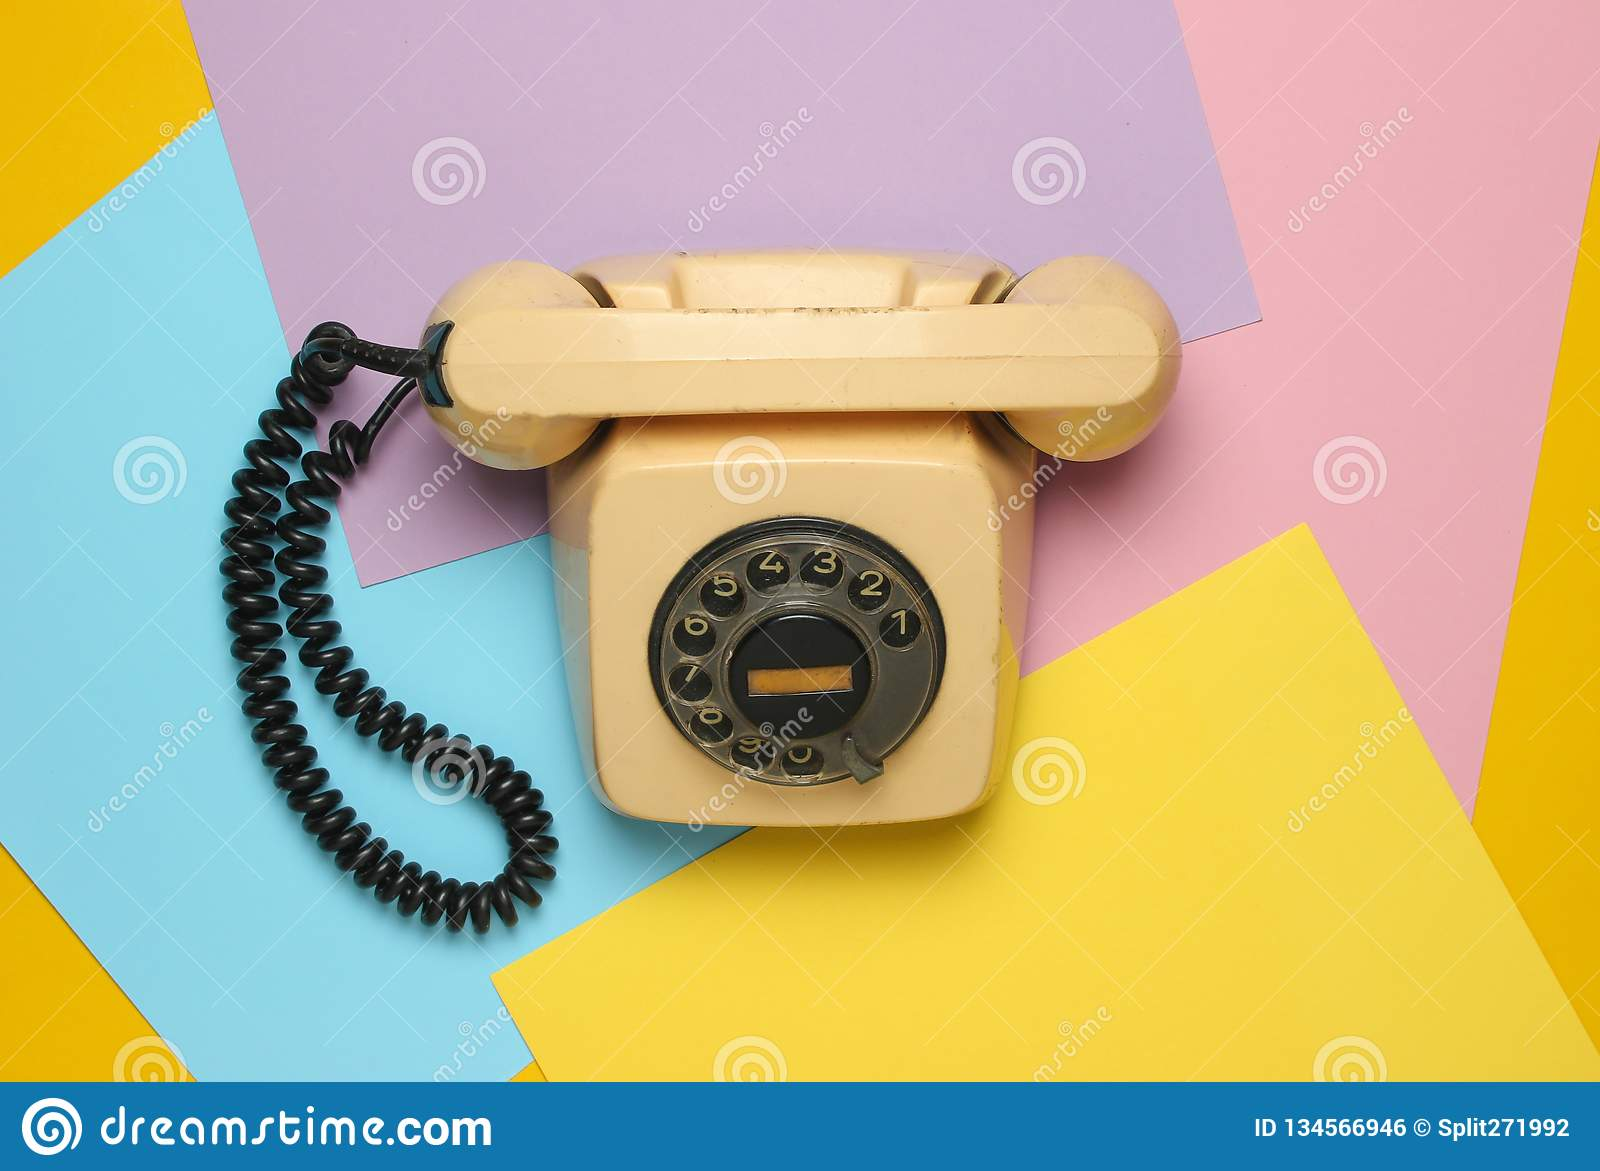 Retro Rotary Phone From 80s On A Colored Pastel Background